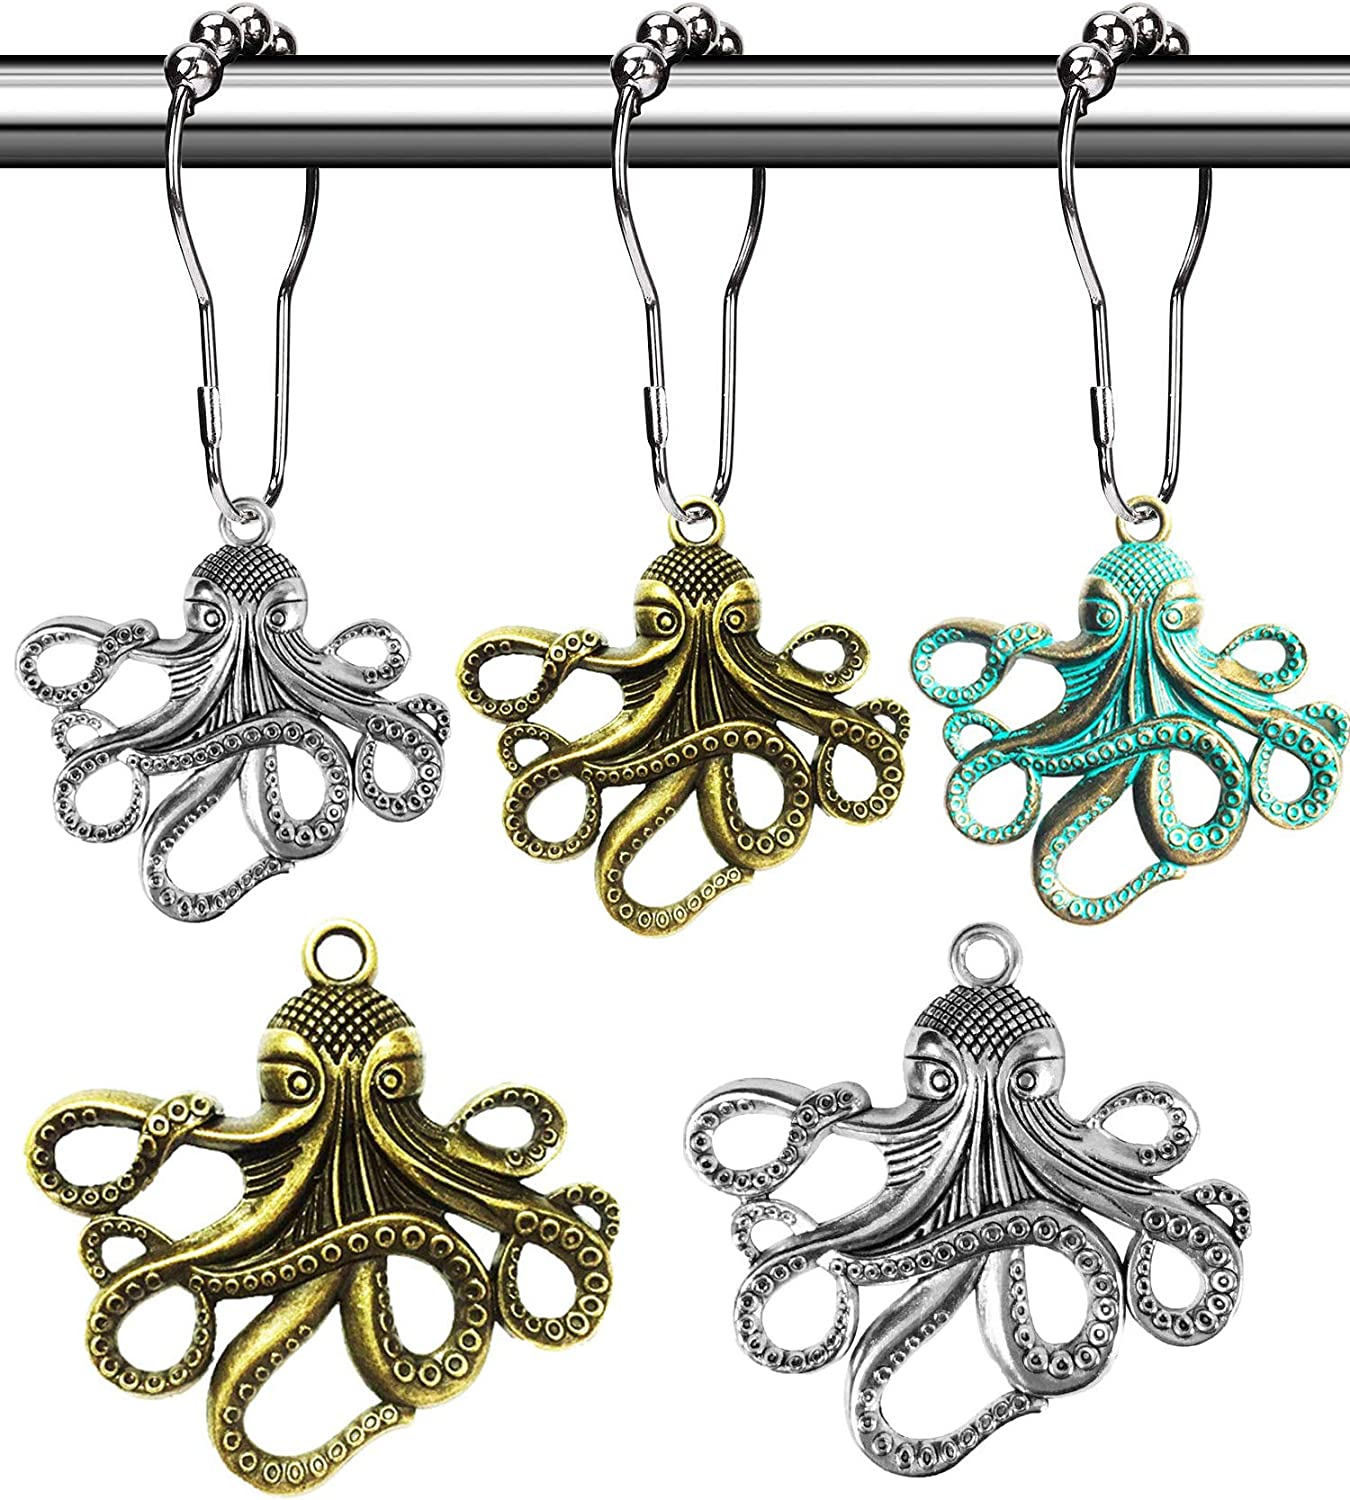 Aimoye Octopus Decorative Shower Curtain Hooks - Rust Proof Brushed Nickel Rings with Octopus Accessories Set Decorate Bathroom with Ocean, Beach, Sea, Nautical Theme (Colorful, 12PCS)